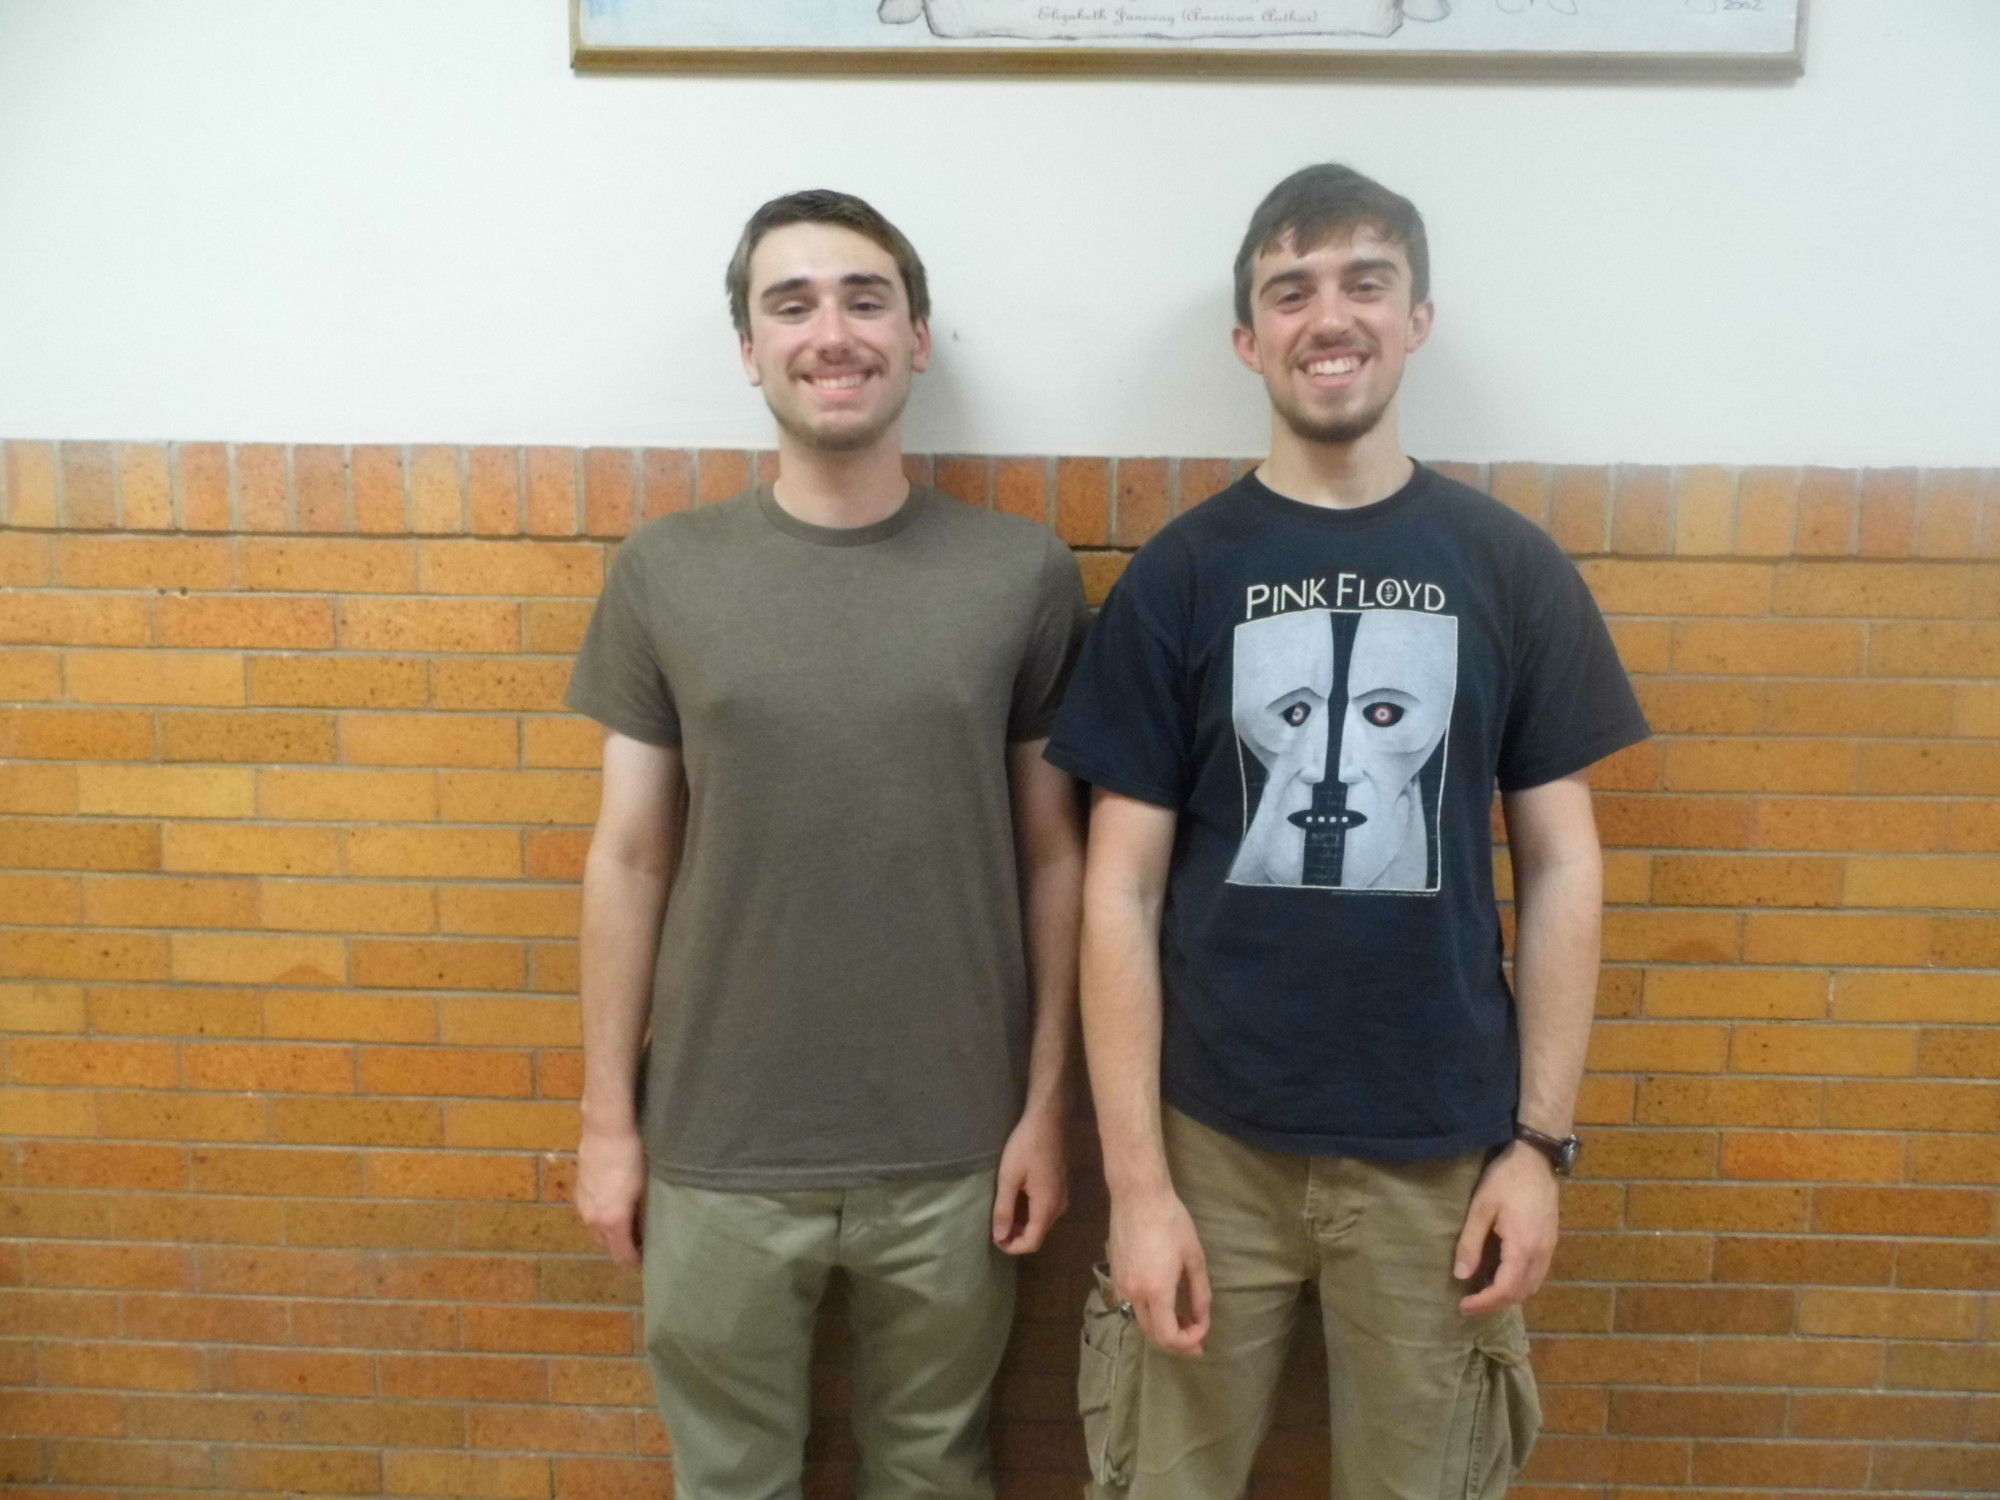 Daniel Sullivan, left, and Robert Myrick are the salutatorian and valedictorian for the Sewanhaka High School Class of 2014.